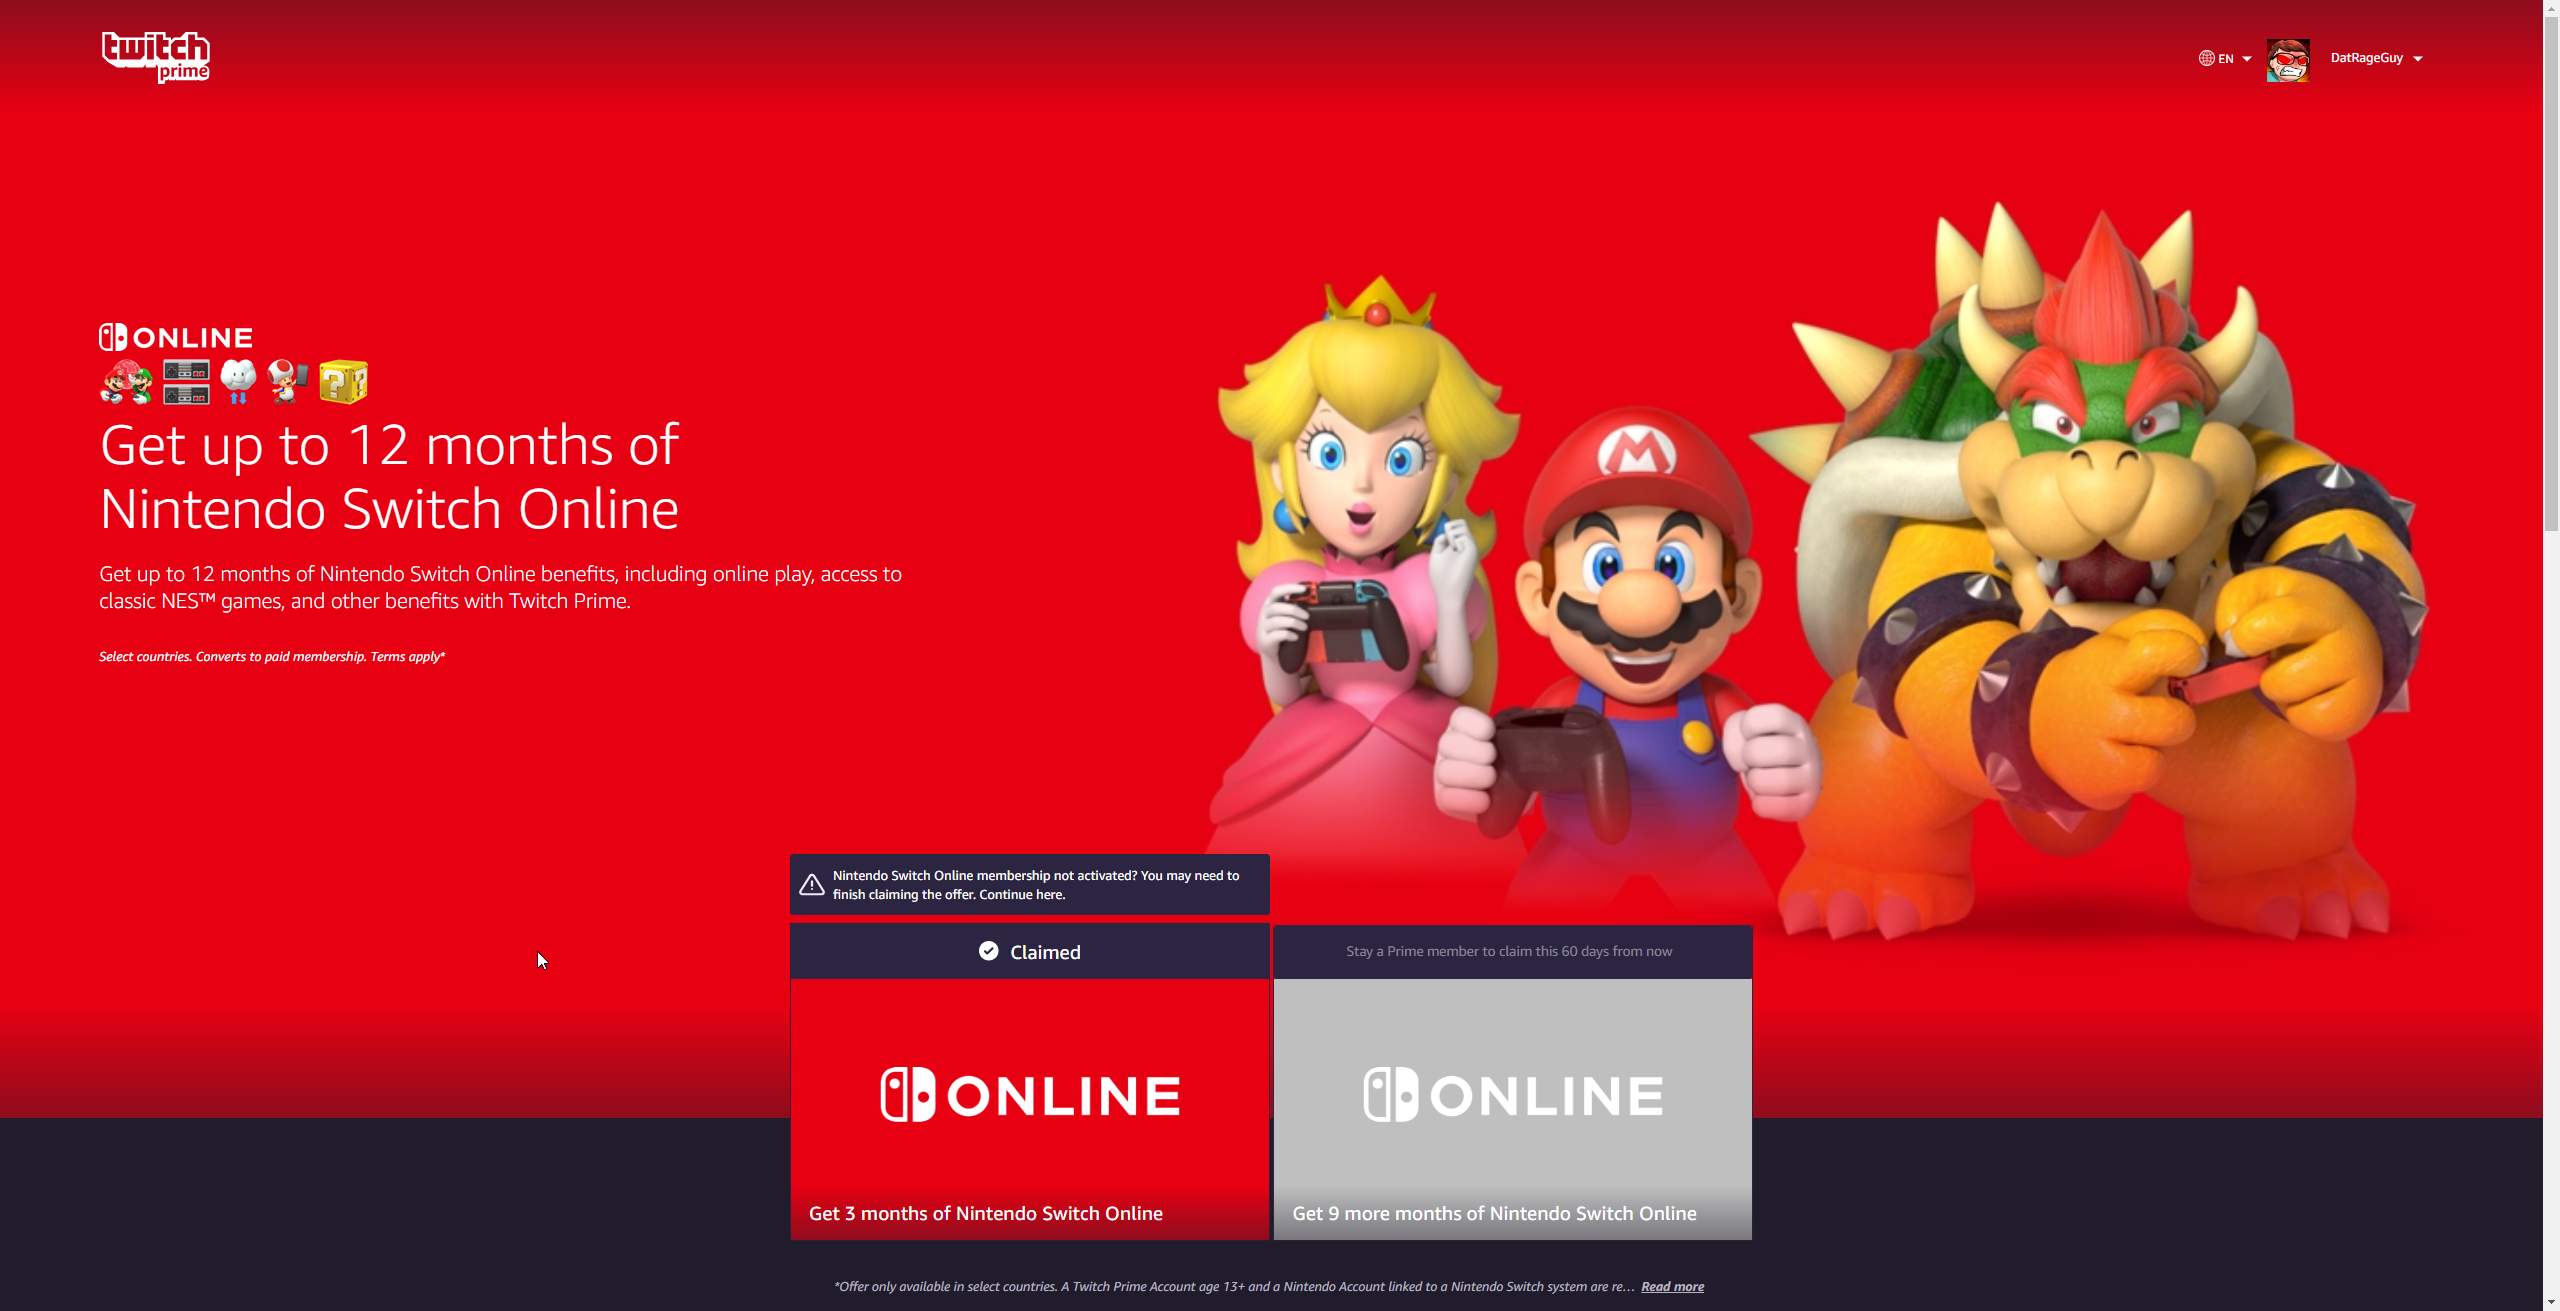 Get a free year of Nintendo Switch Online with Twitch Prime